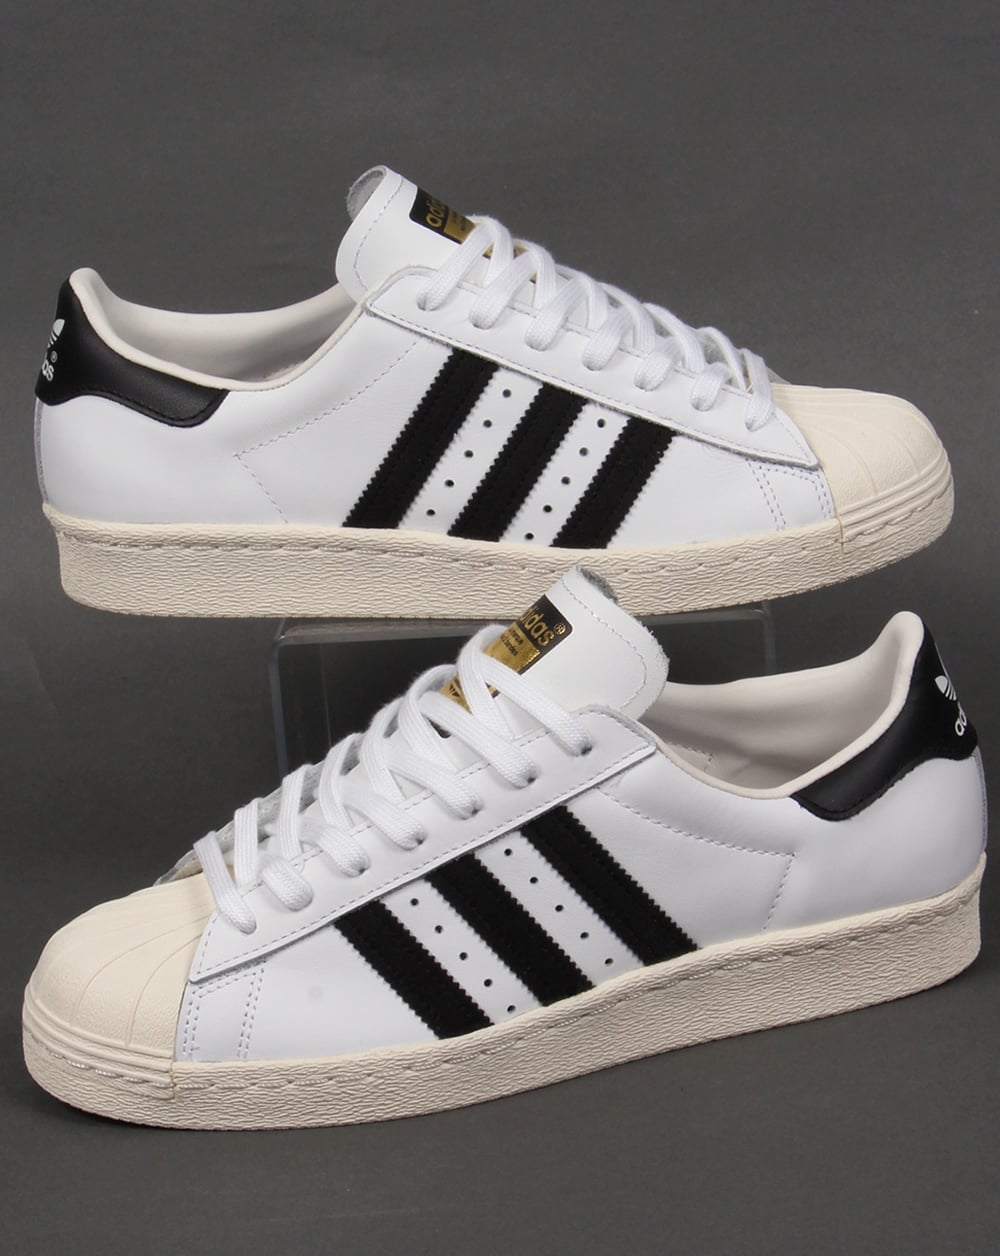 adidas superstar 80s trainers white black originals shell. Black Bedroom Furniture Sets. Home Design Ideas